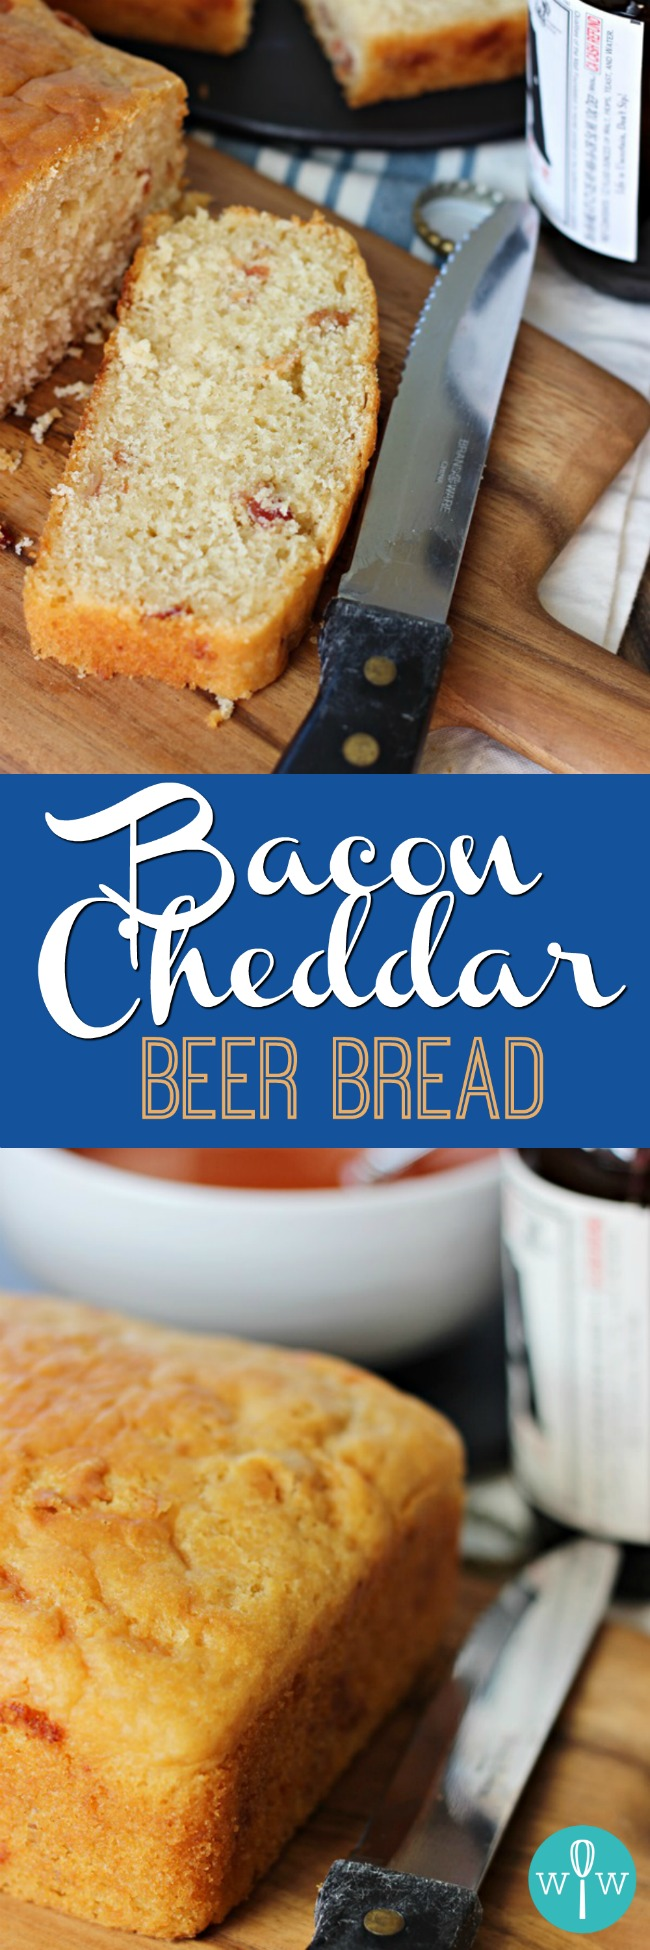 Bacon Cheddar Beer Bread – A moist, dense bread recipe combining smoky bacon and sharp cheddar cheese with a buttery, crunchy crust. A quintessential comfort food! | www.worthwhisking.com